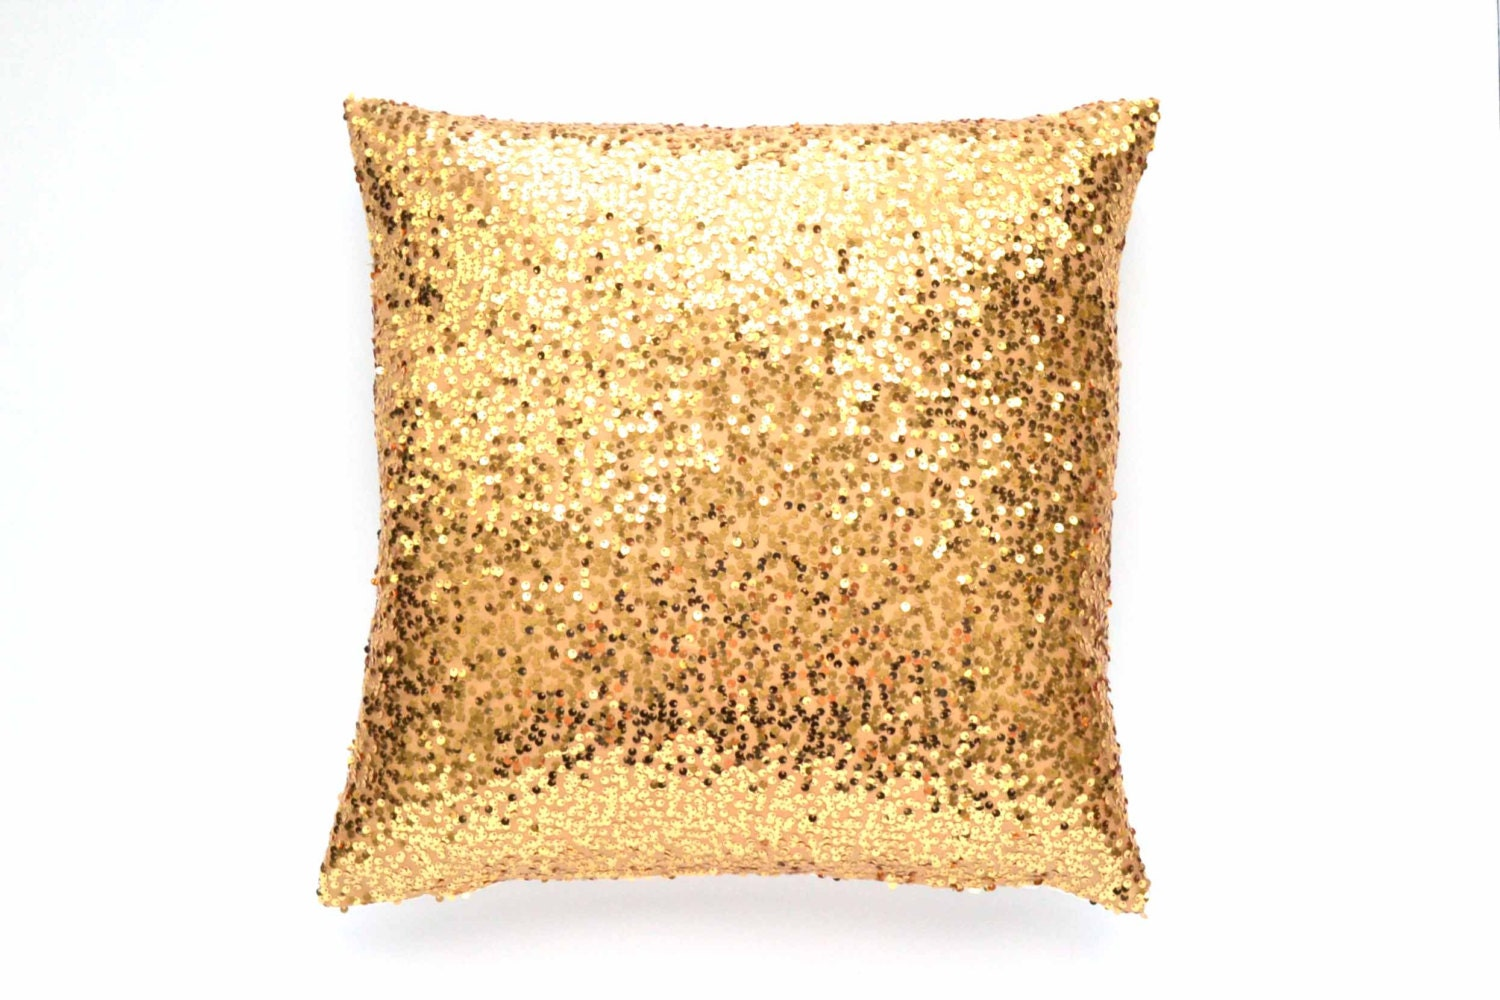 muse modern and embellished jonathan decor snake cor gold apple d textured alt pillow image pillows throw